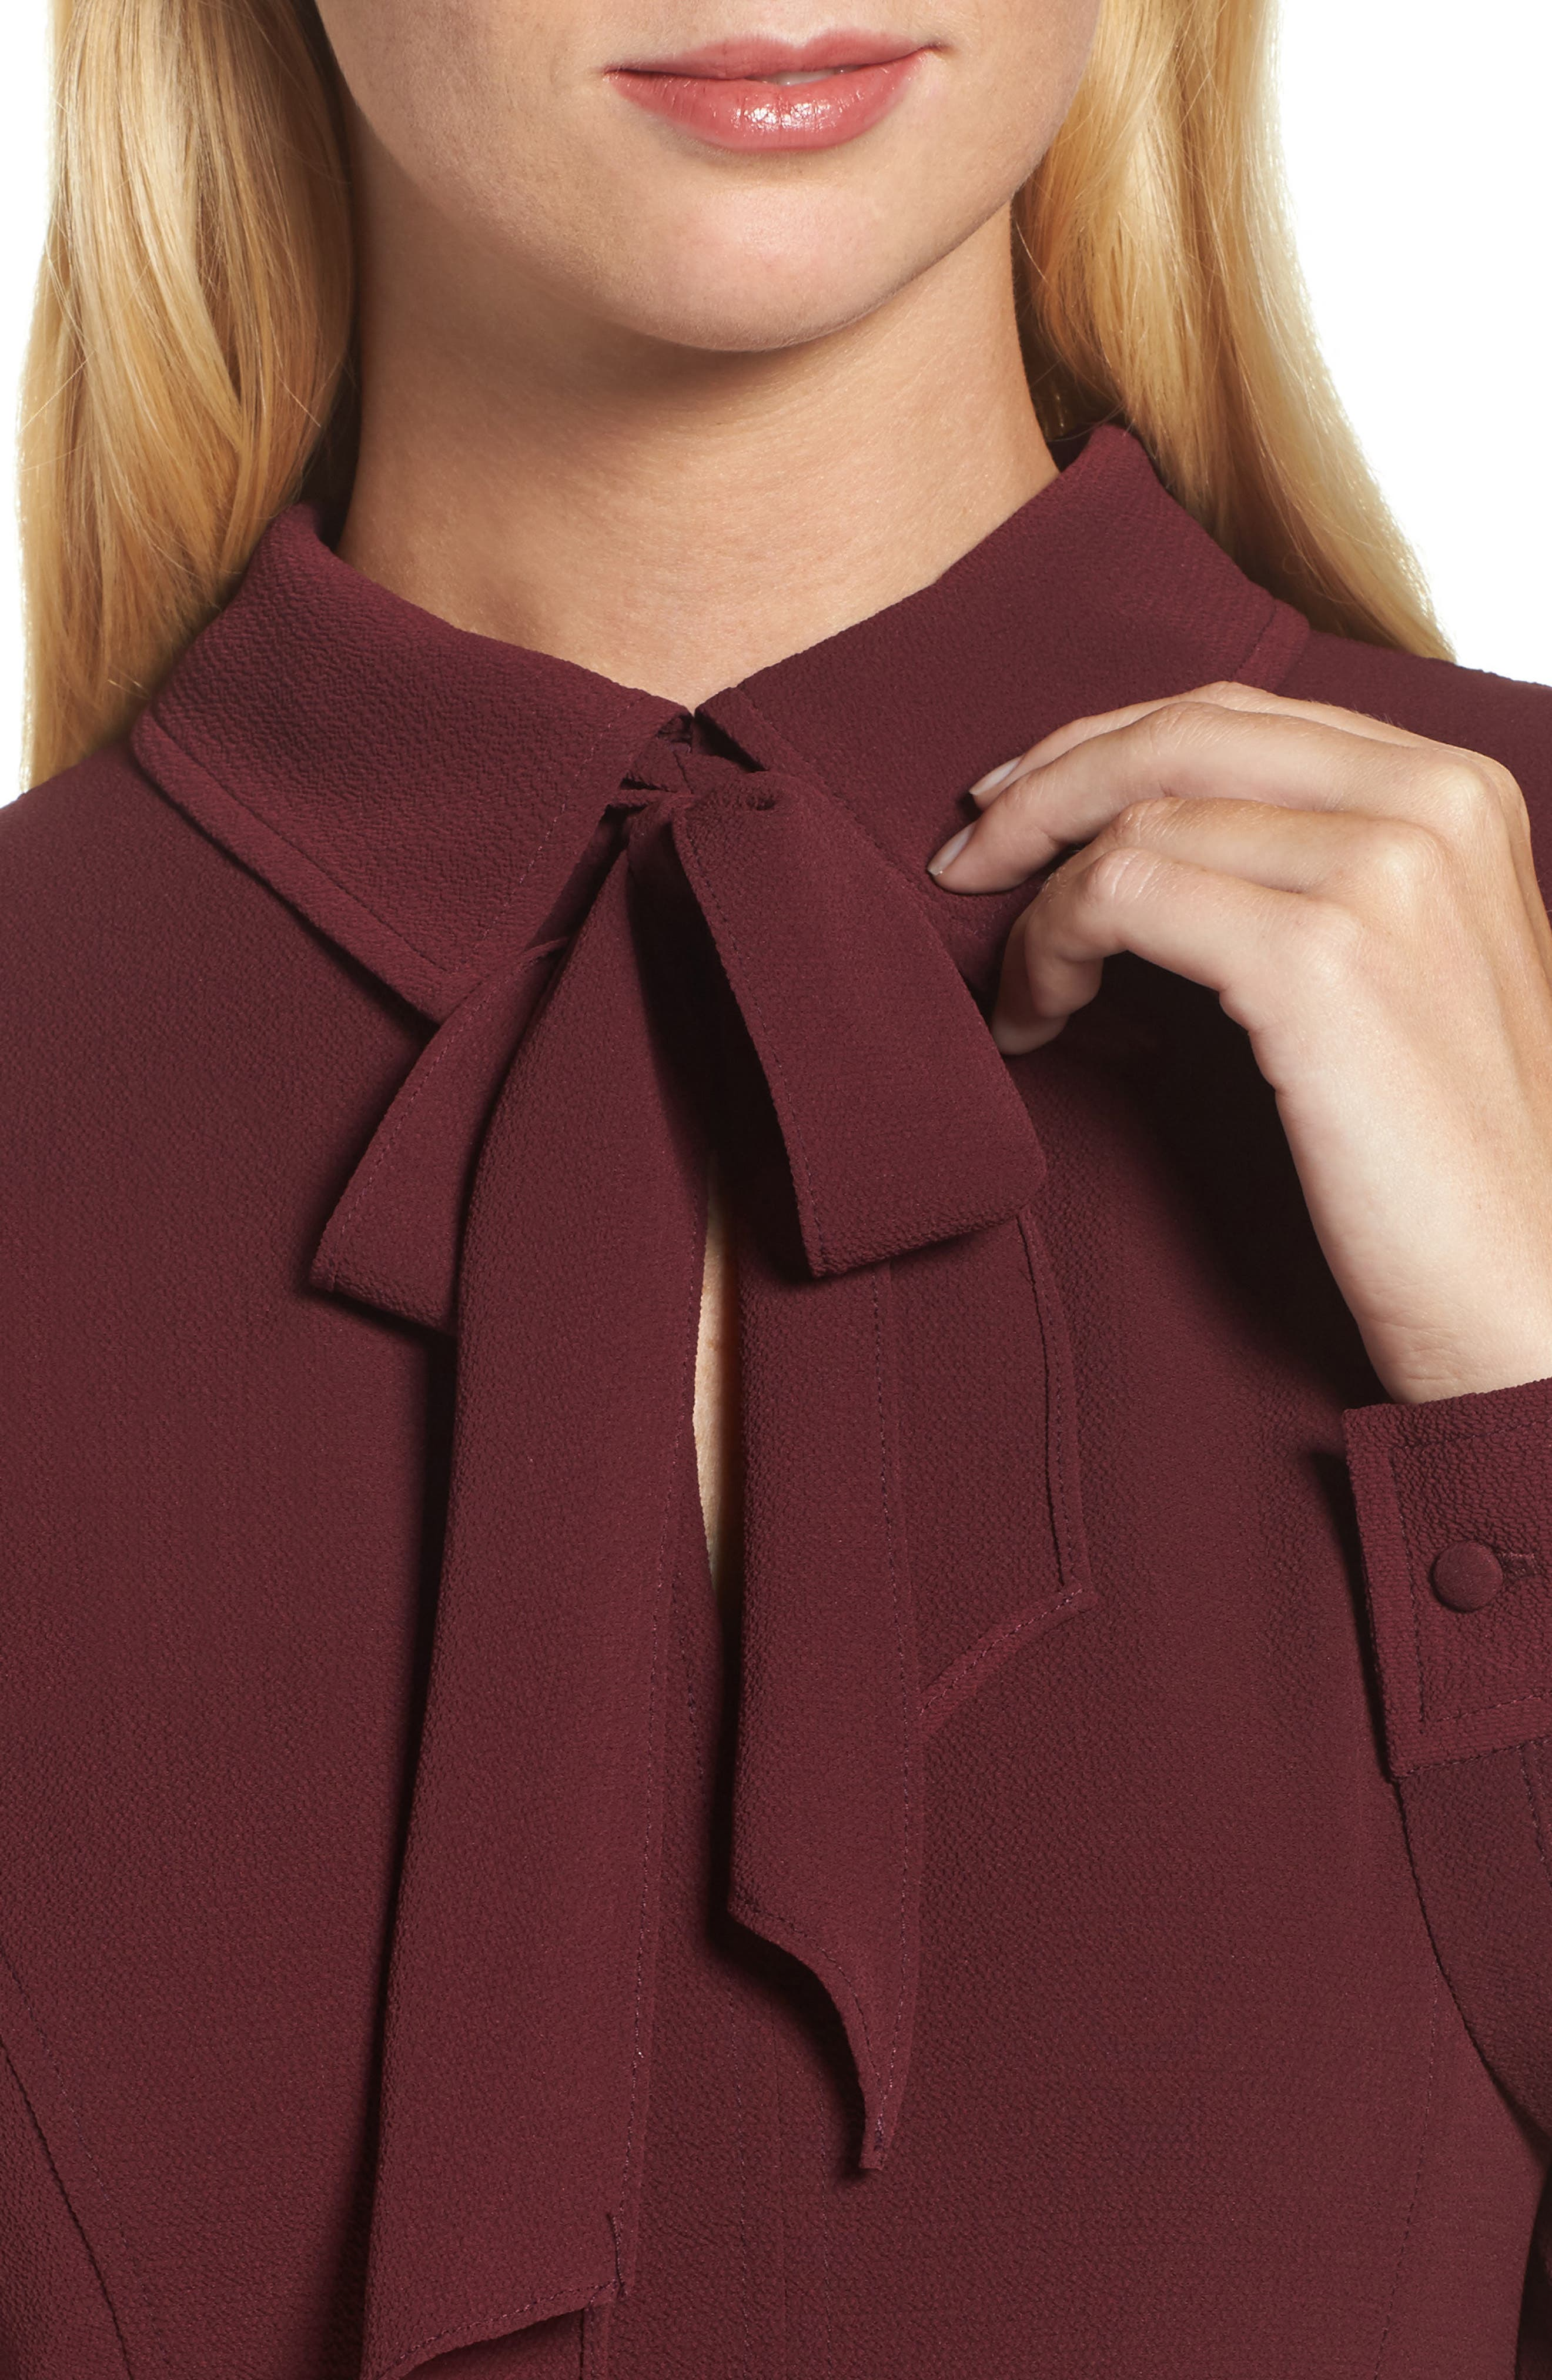 Crepe Bow Fit & Flare Dress,                             Alternate thumbnail 4, color,                             Wine